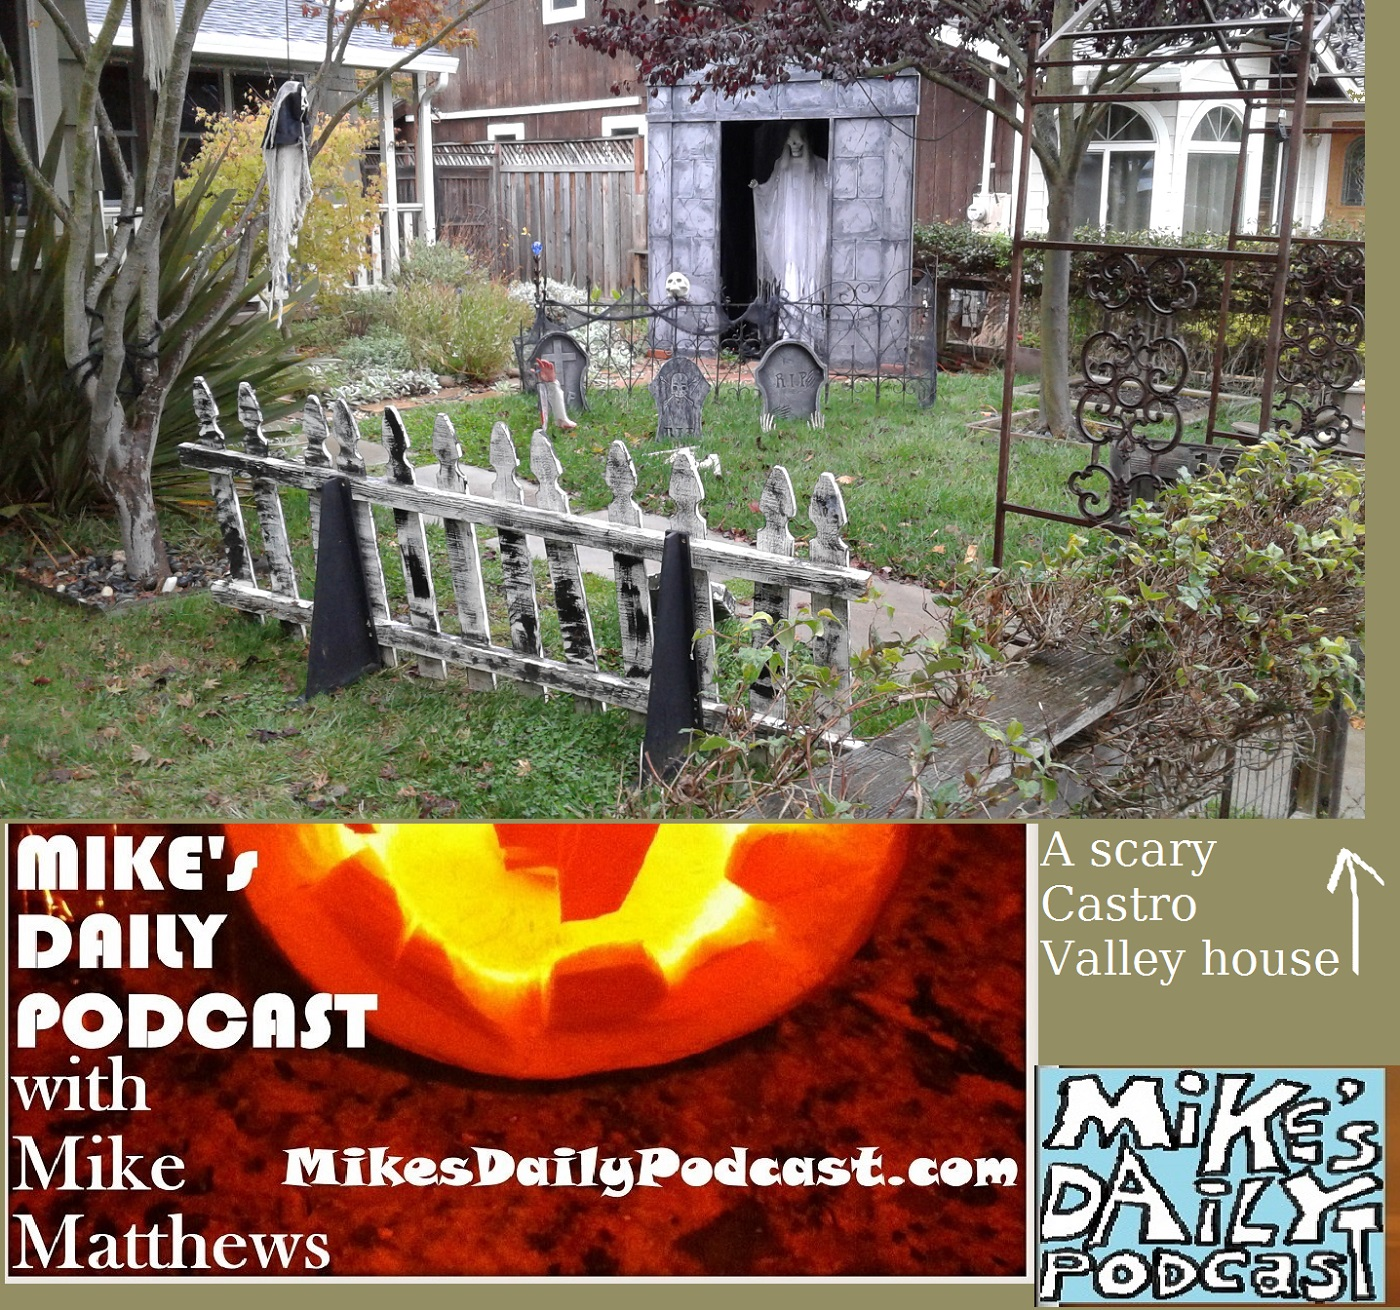 mikes-daily-podcast-1207-castro-valley-halloween-house